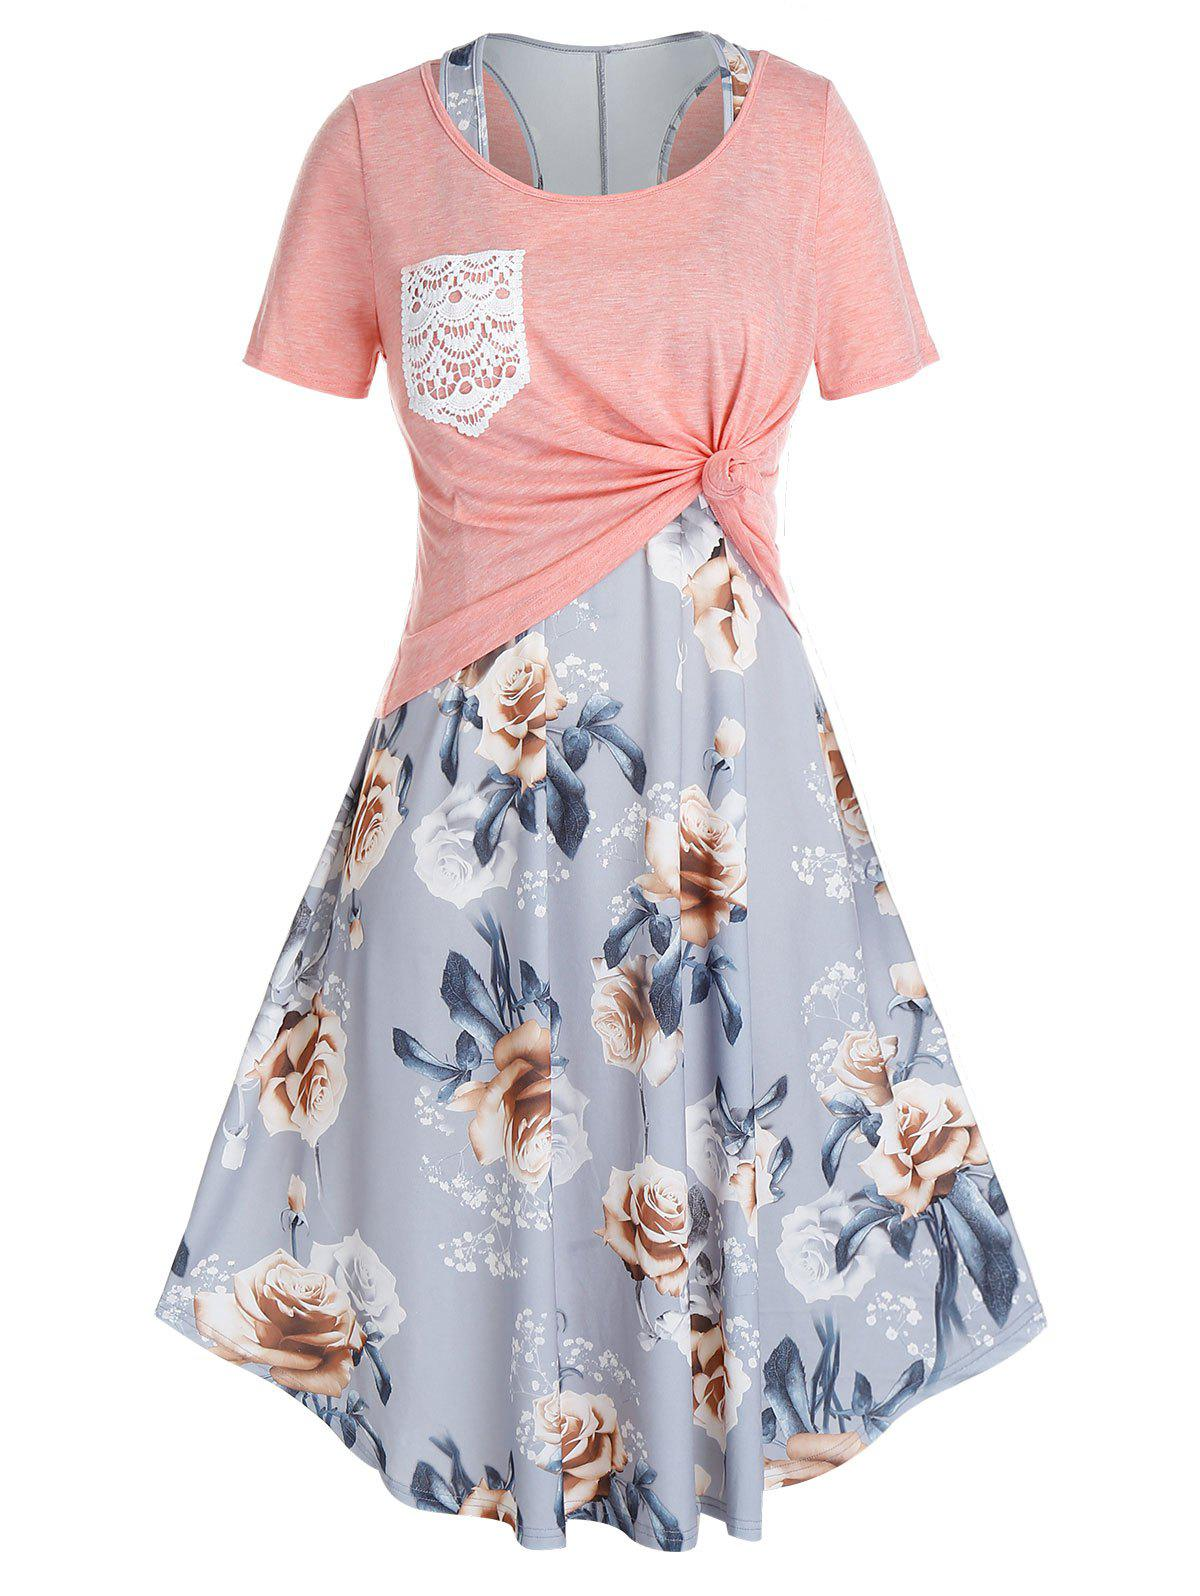 Plus Size Racerback Floral Dress With Knotted Tee Set - PINK 5X